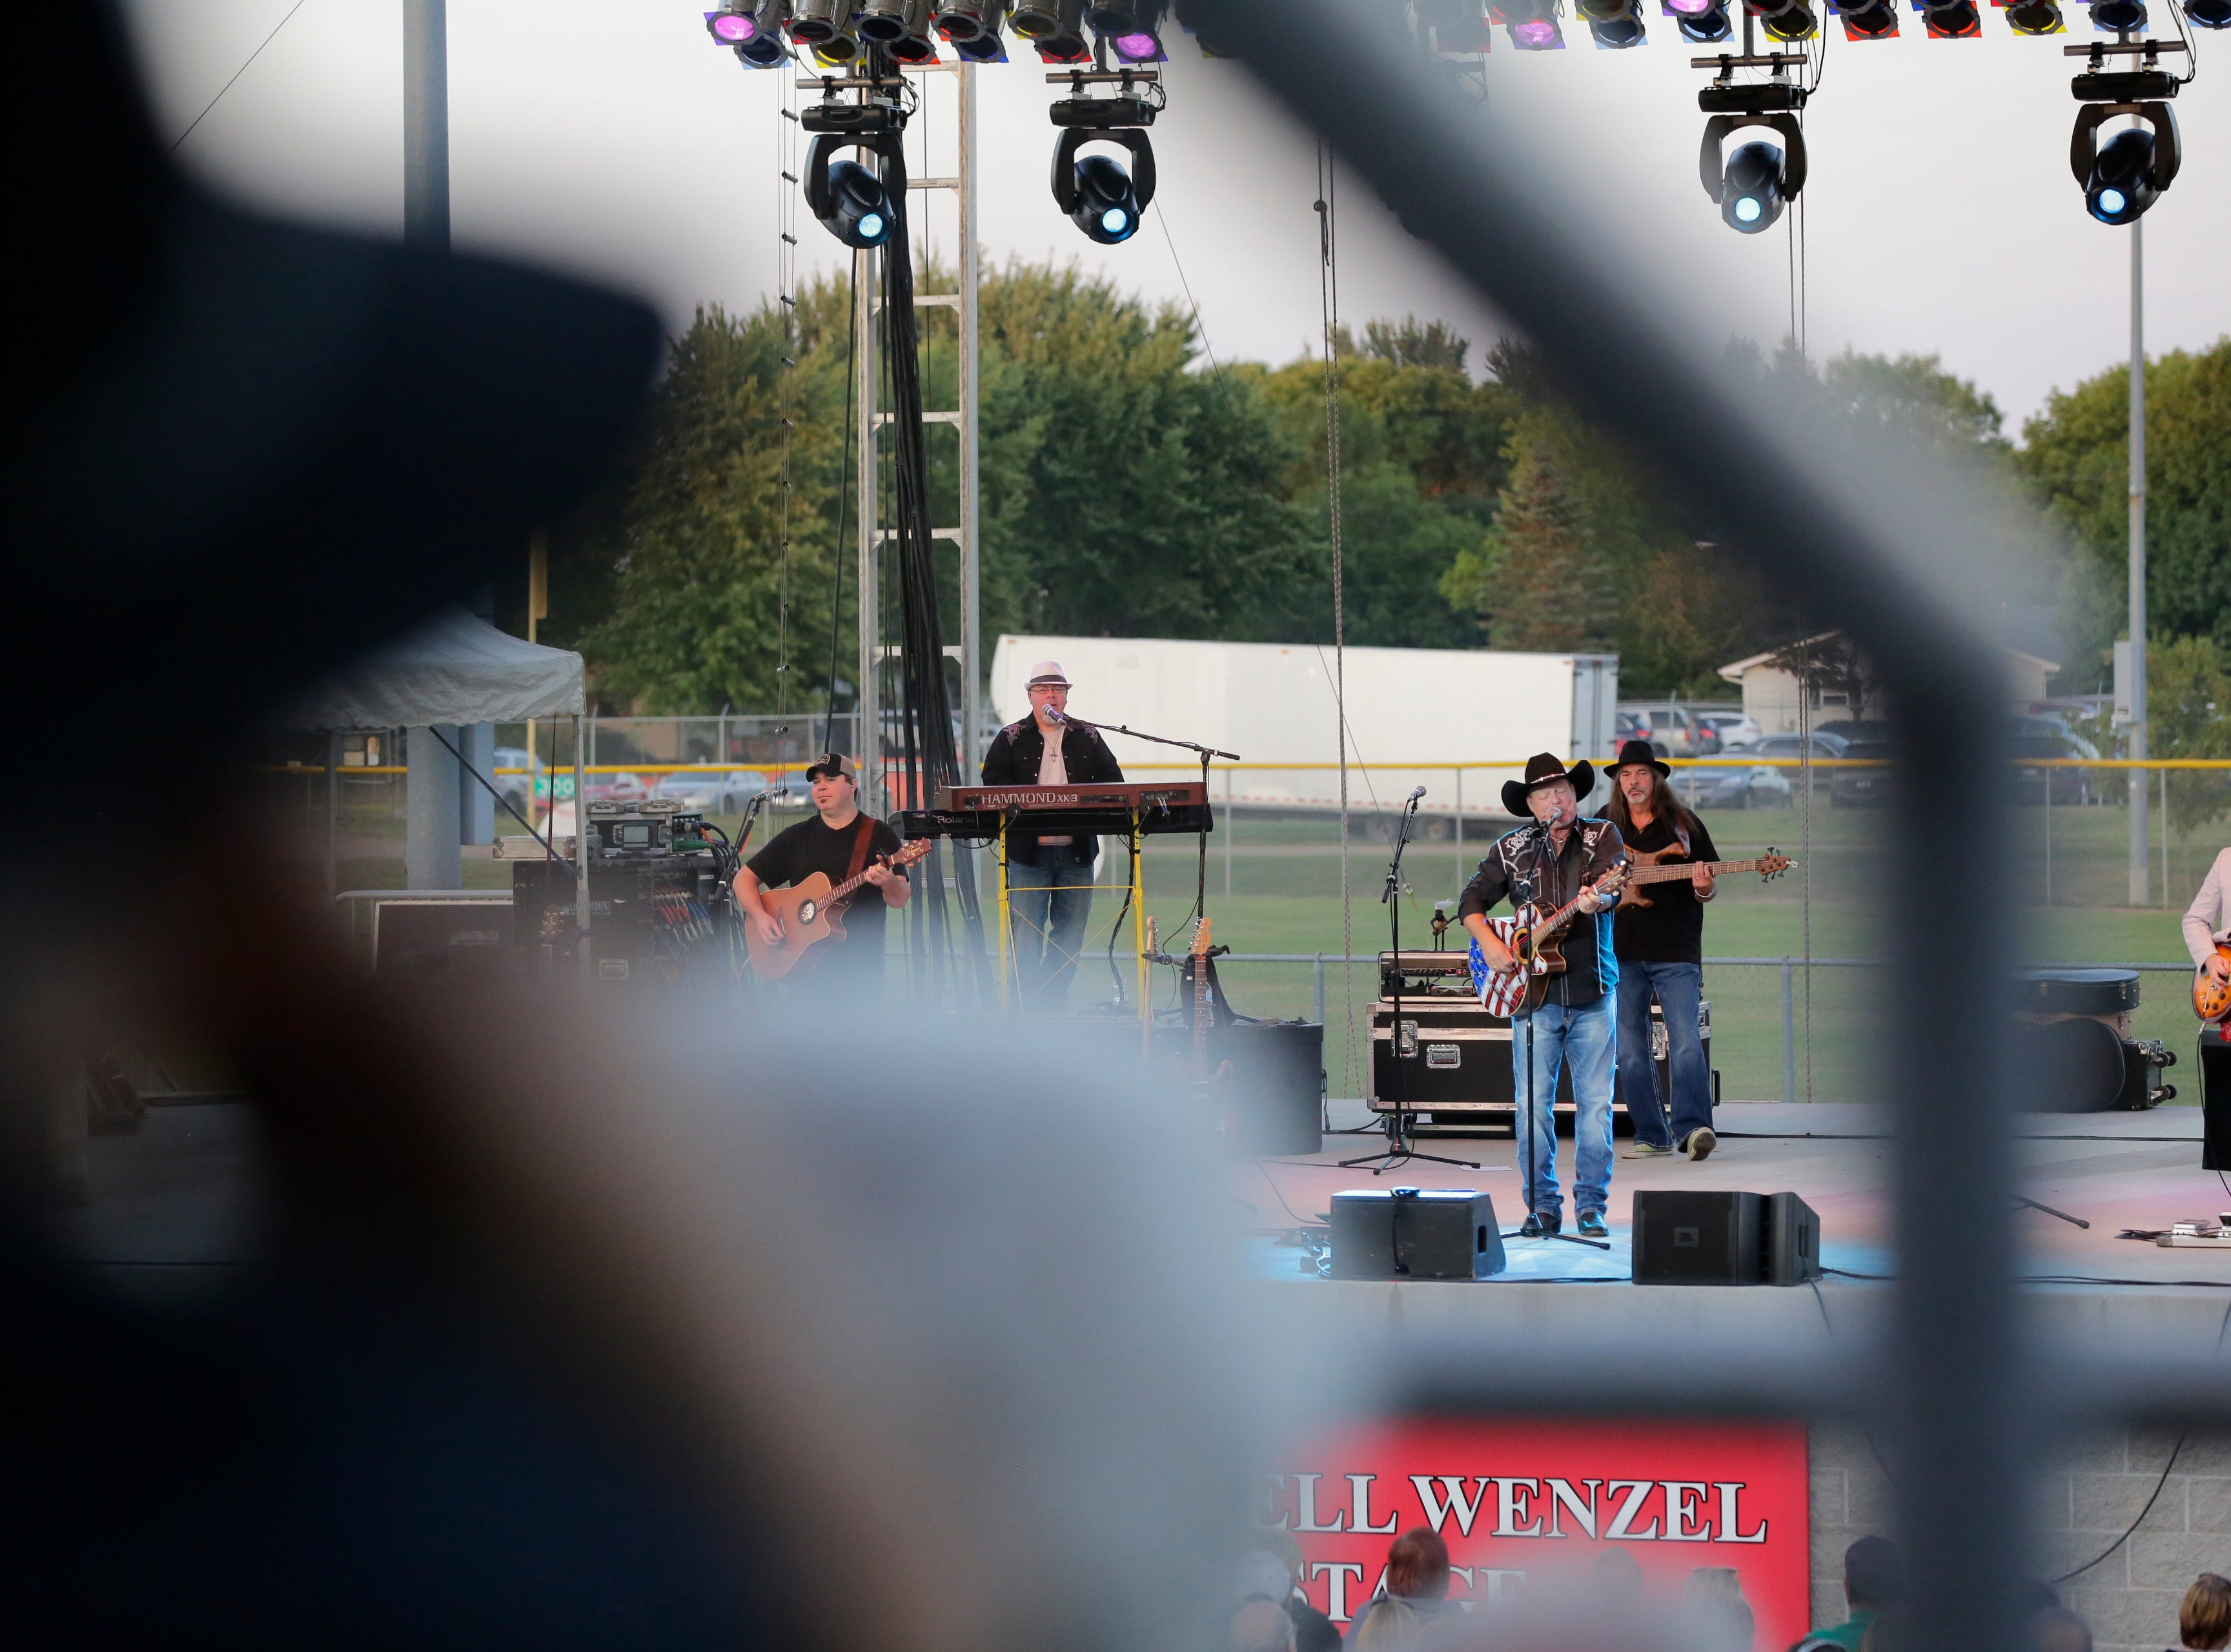 John Michael Montgomery performs in the grandstand at the Central Wisconsin State Fair in Marshfield Wednesday, August 22, 2018.